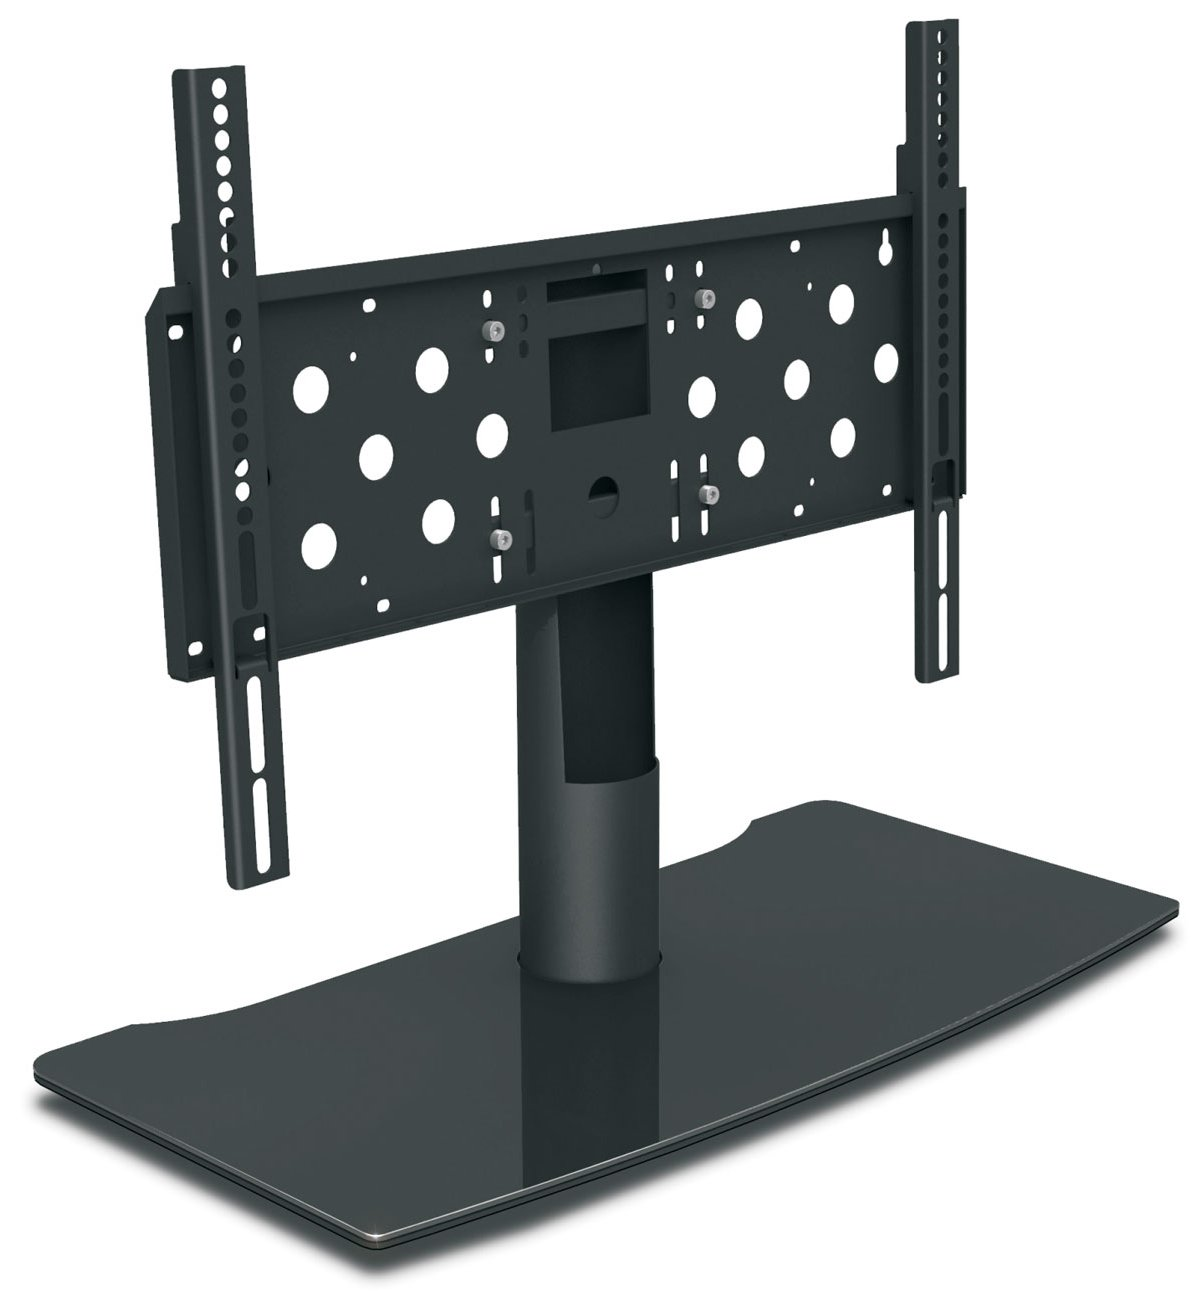 Mountech MTD5 Black Table Top Stand